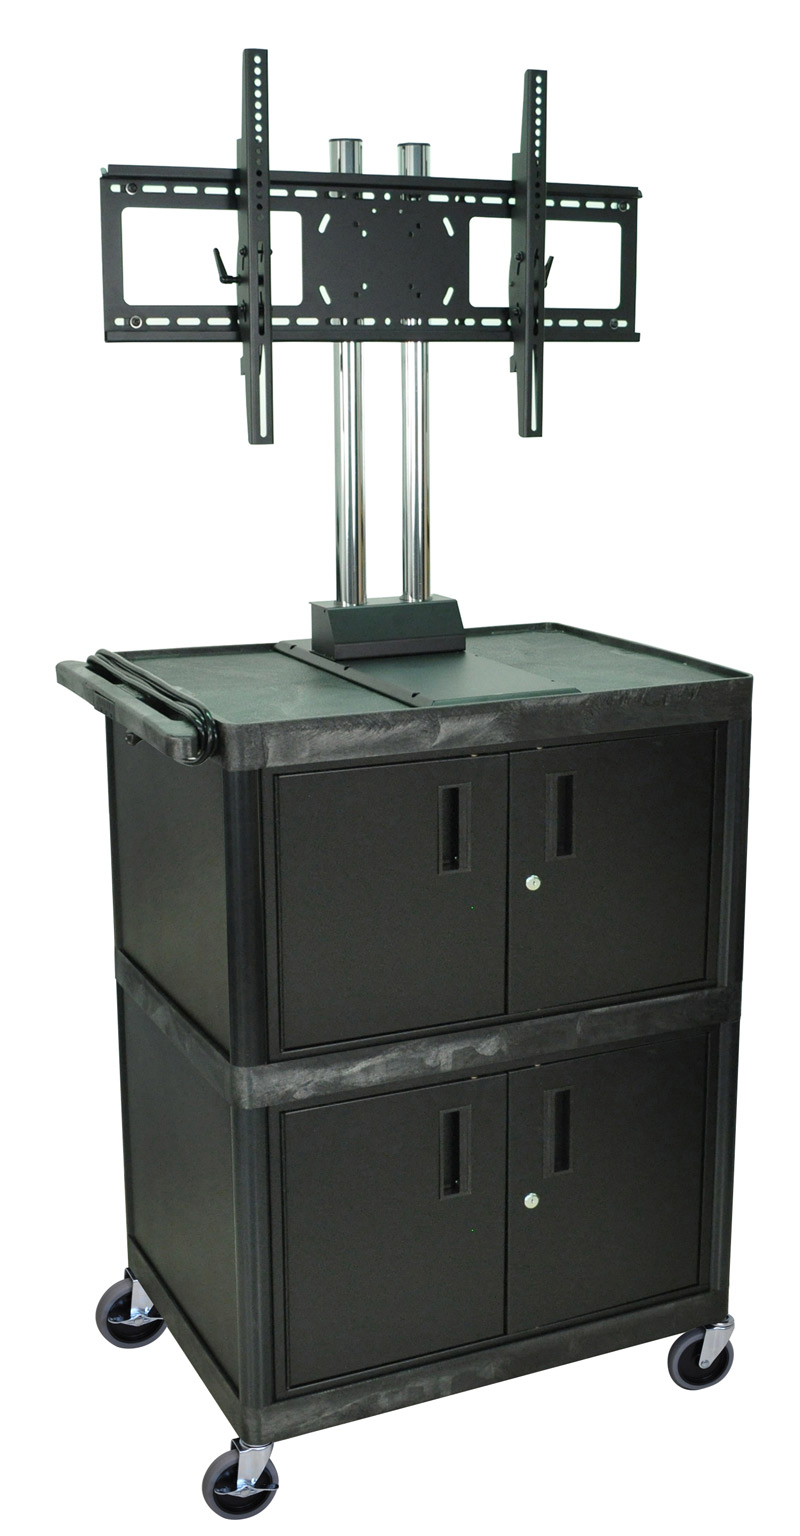 Bon H Wilson Black 3 Shelf Mobile Cart W/ 2 Cabinets And Universal LCD TV Mount